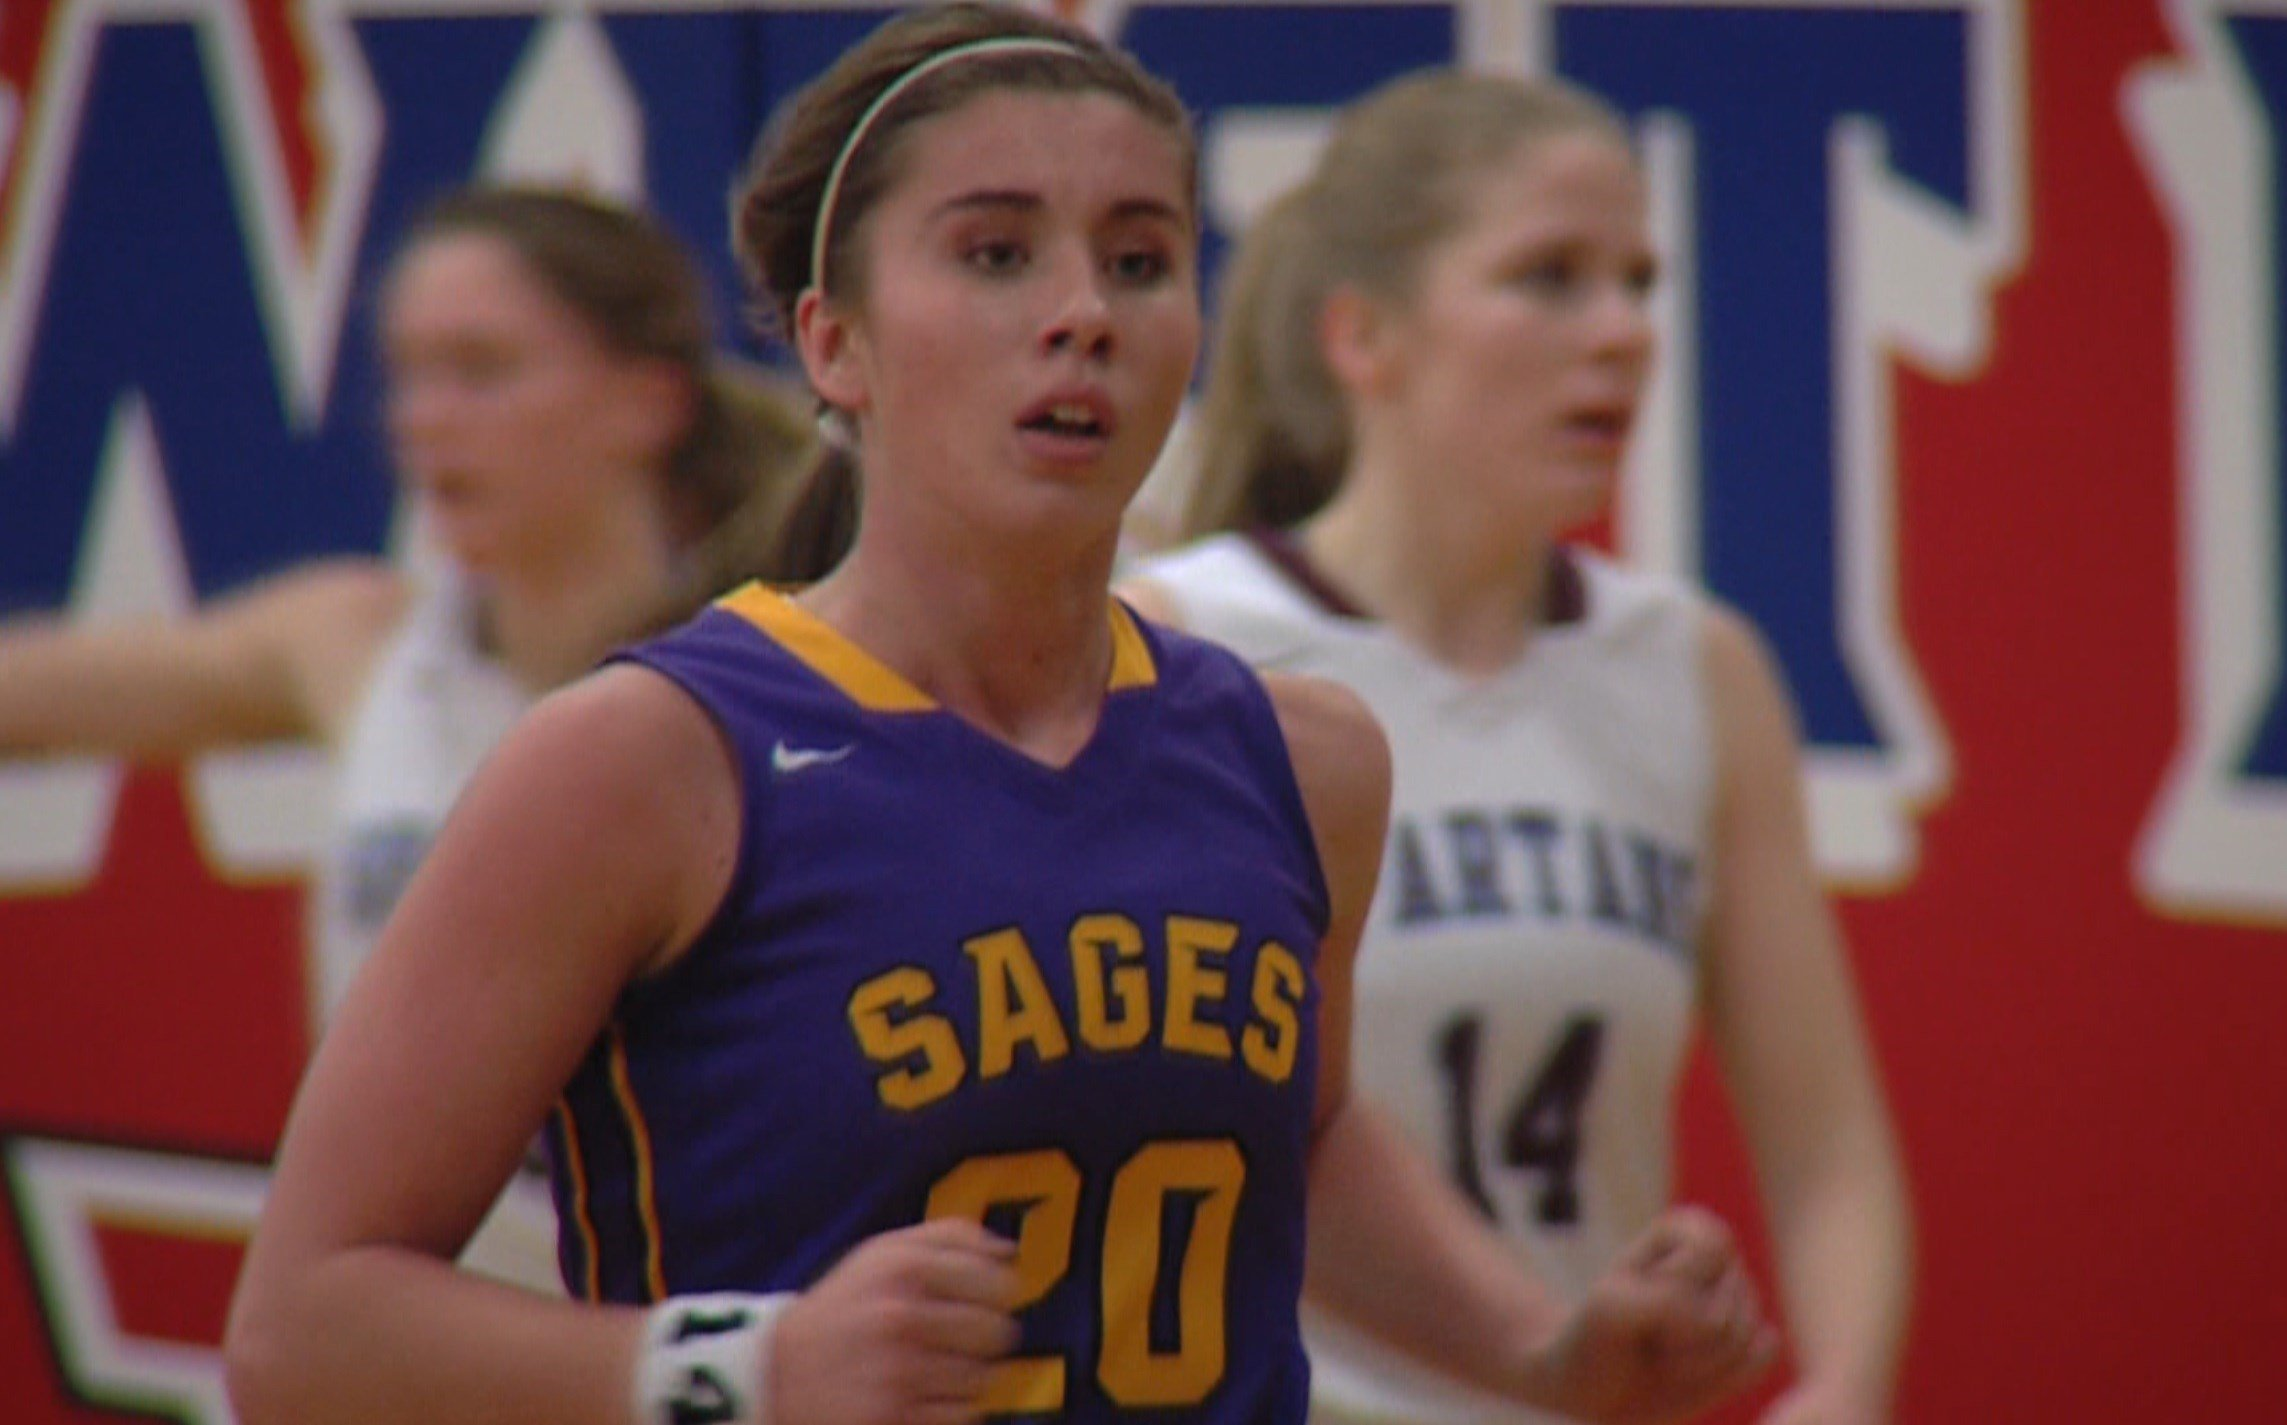 Monticello's Tatum McCall posted 27 points and the No. 3-seeded Sages edged No. 1 seed St. Joseph-Ogden 41-40 in overtime at the Iroquois West Sectional Championship.